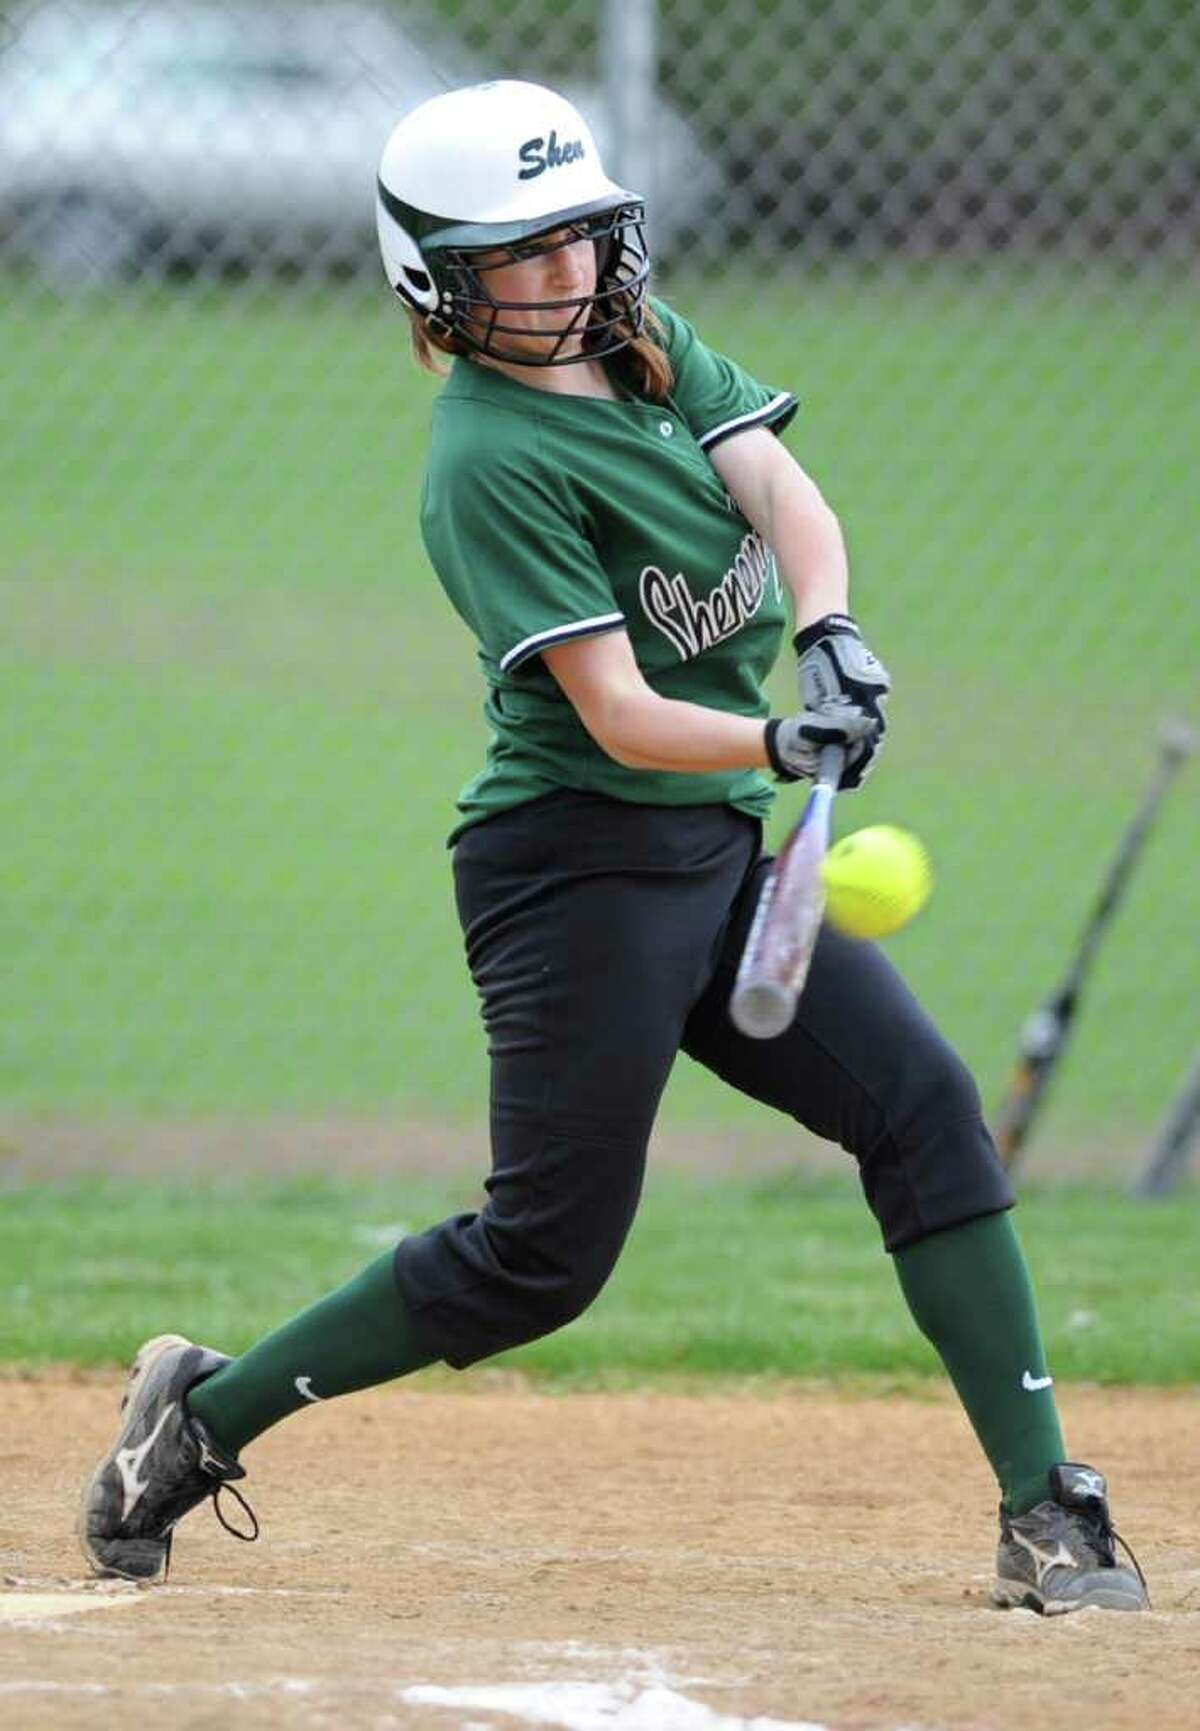 Shenendehowa's Melissa Morgan hits one over the fence for a home run during a game against Behtlehem in Clifton Park, N.Y. Monday May 2, 2011. (Lori Van Buren / Times Union)